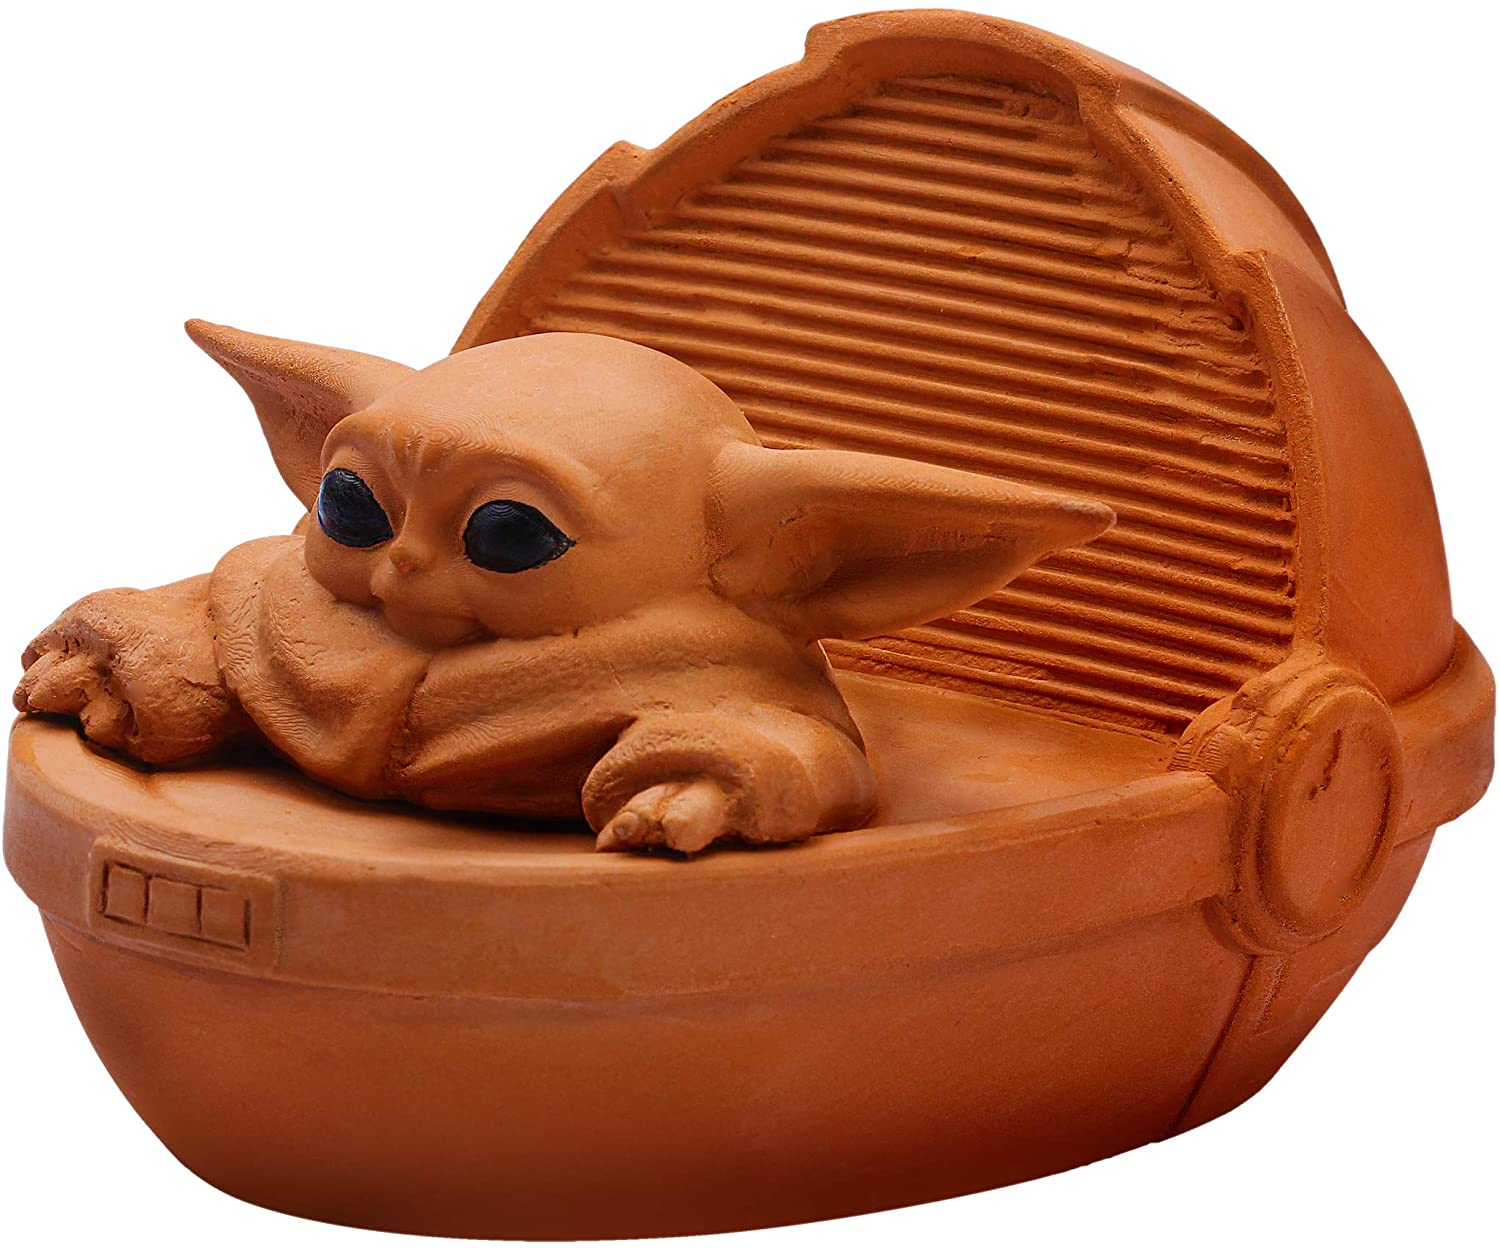 Baby Yoda from The Mandalorian Chia Pet